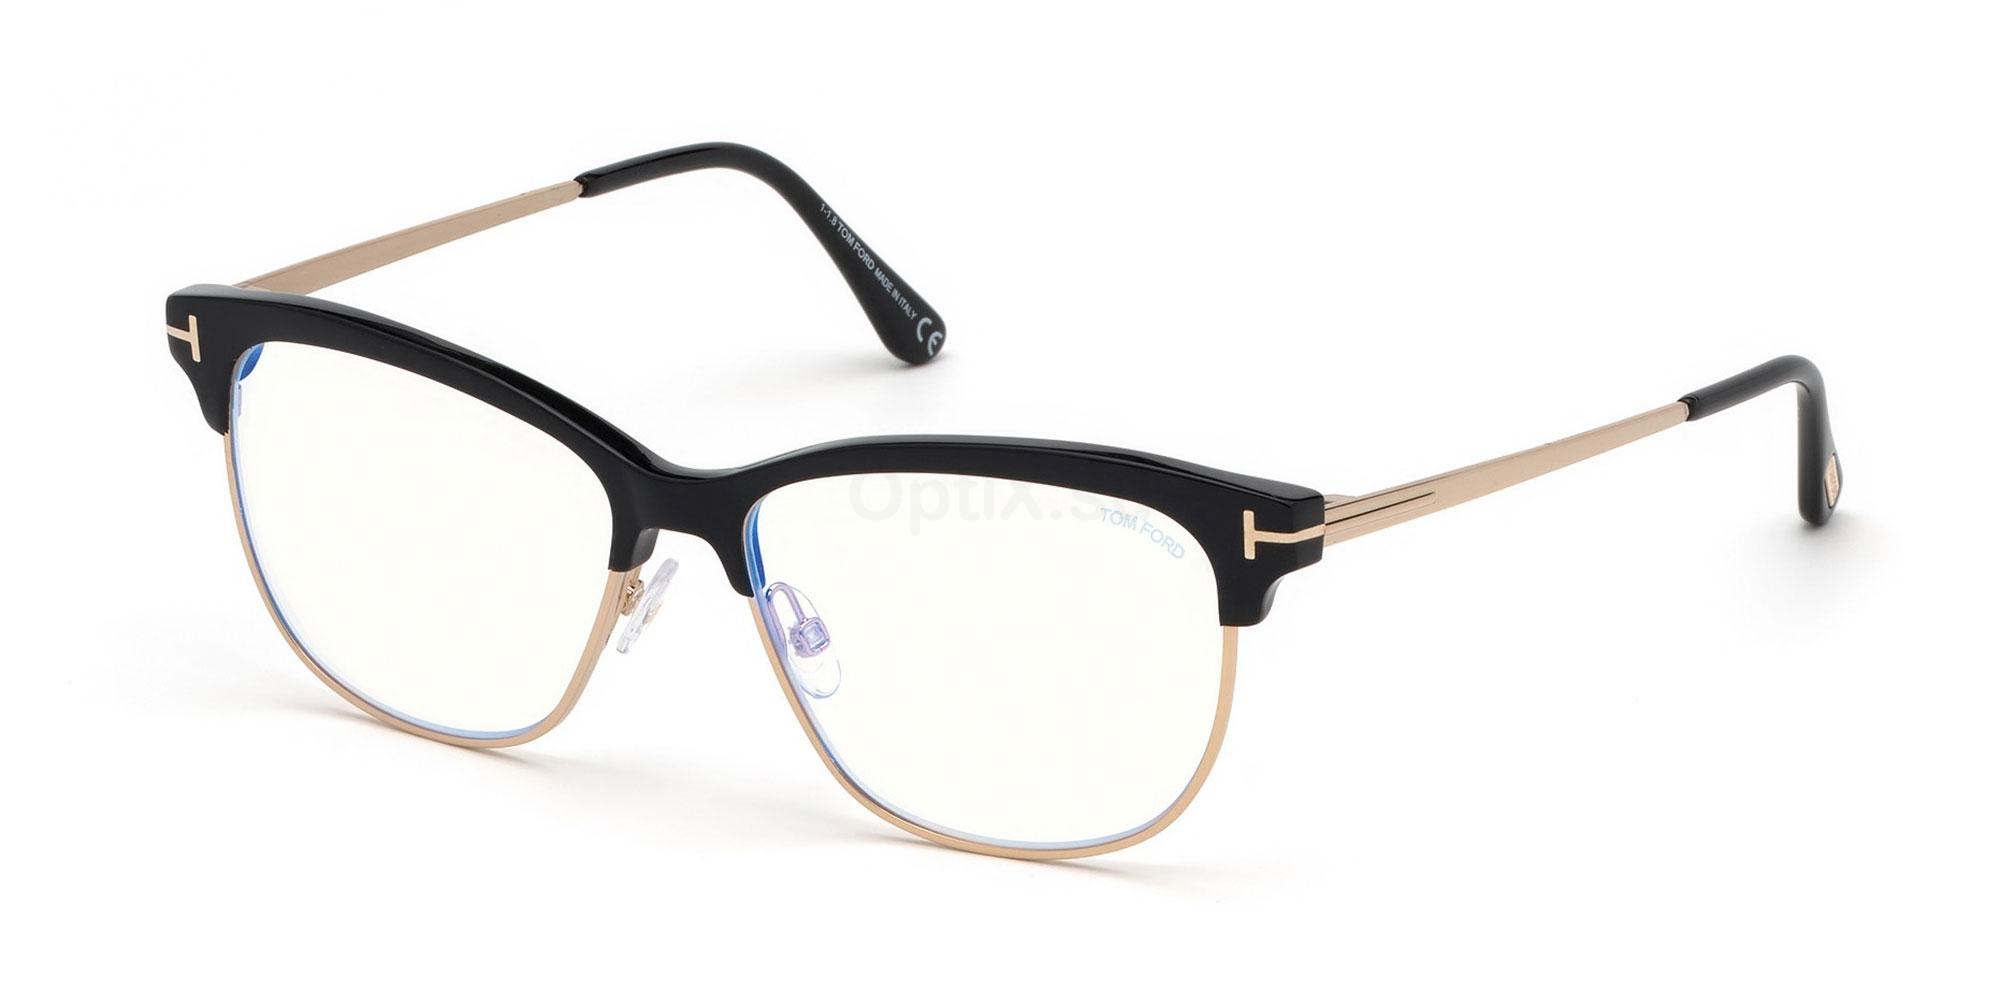 001 FT5546-B Glasses, Tom Ford